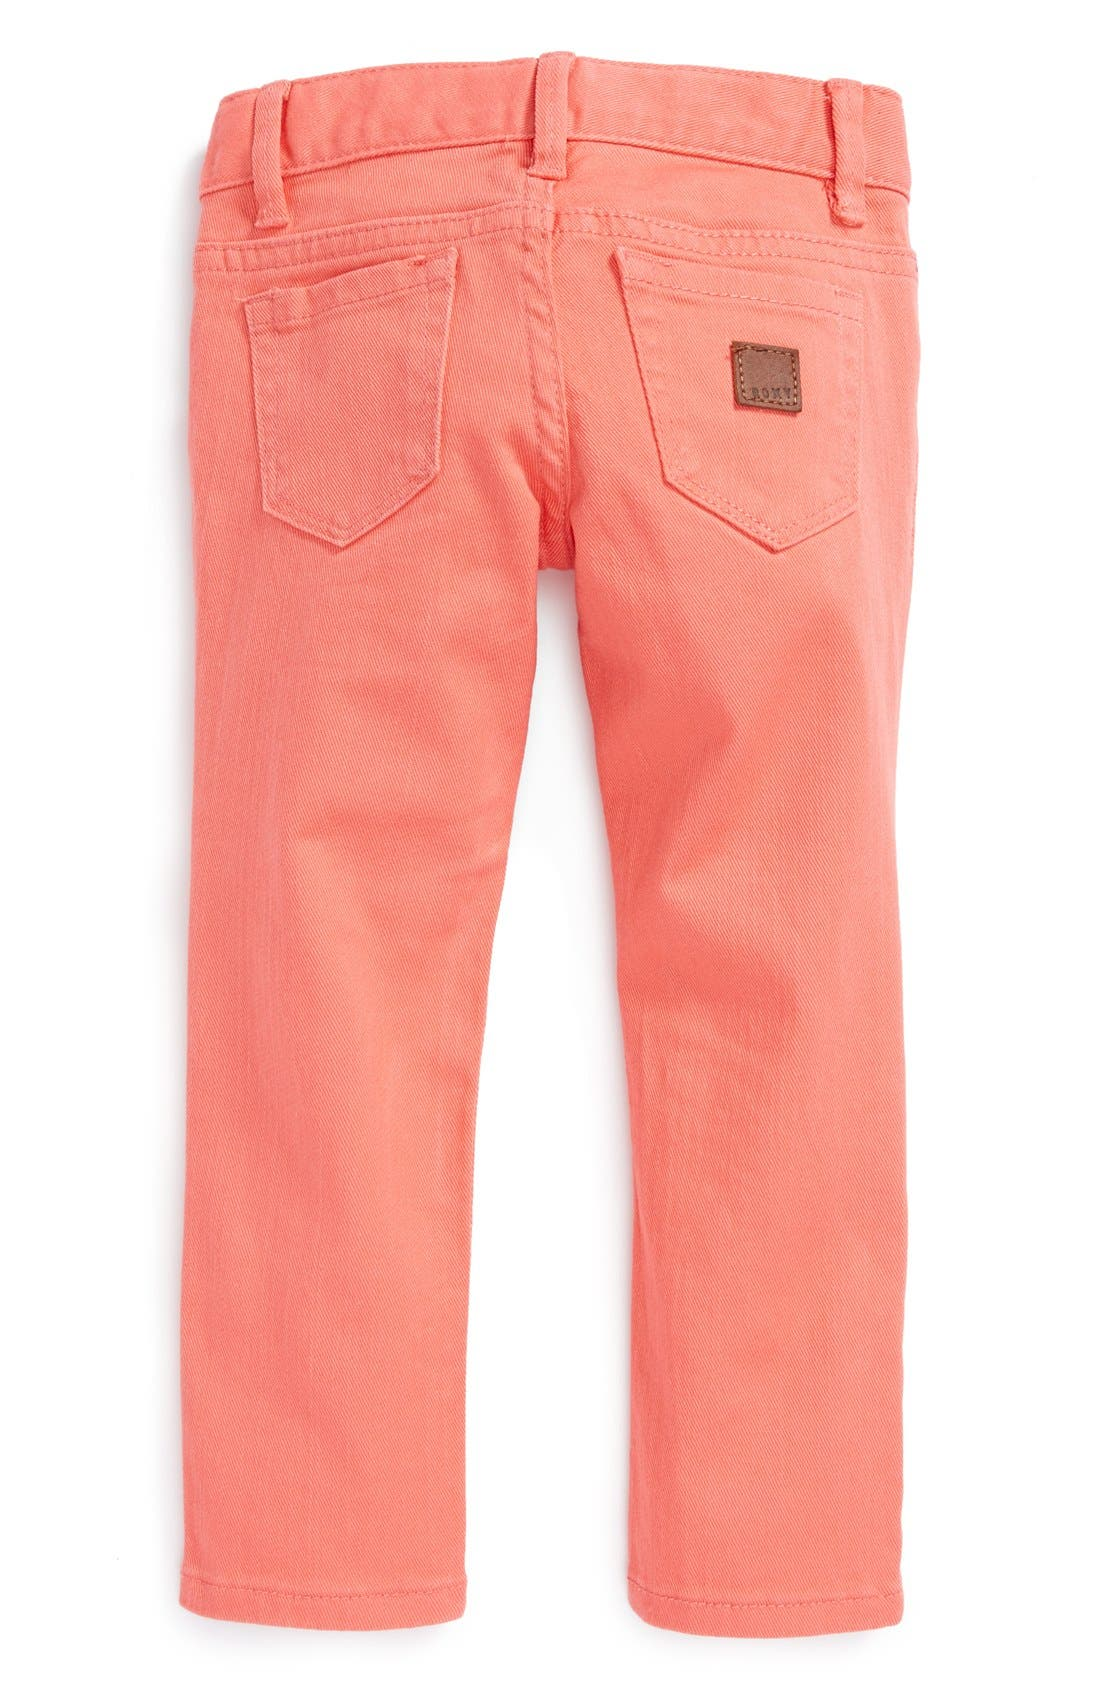 Main Image - Roxy 'Tawana' Skinny Jeans (Toddler Girls)